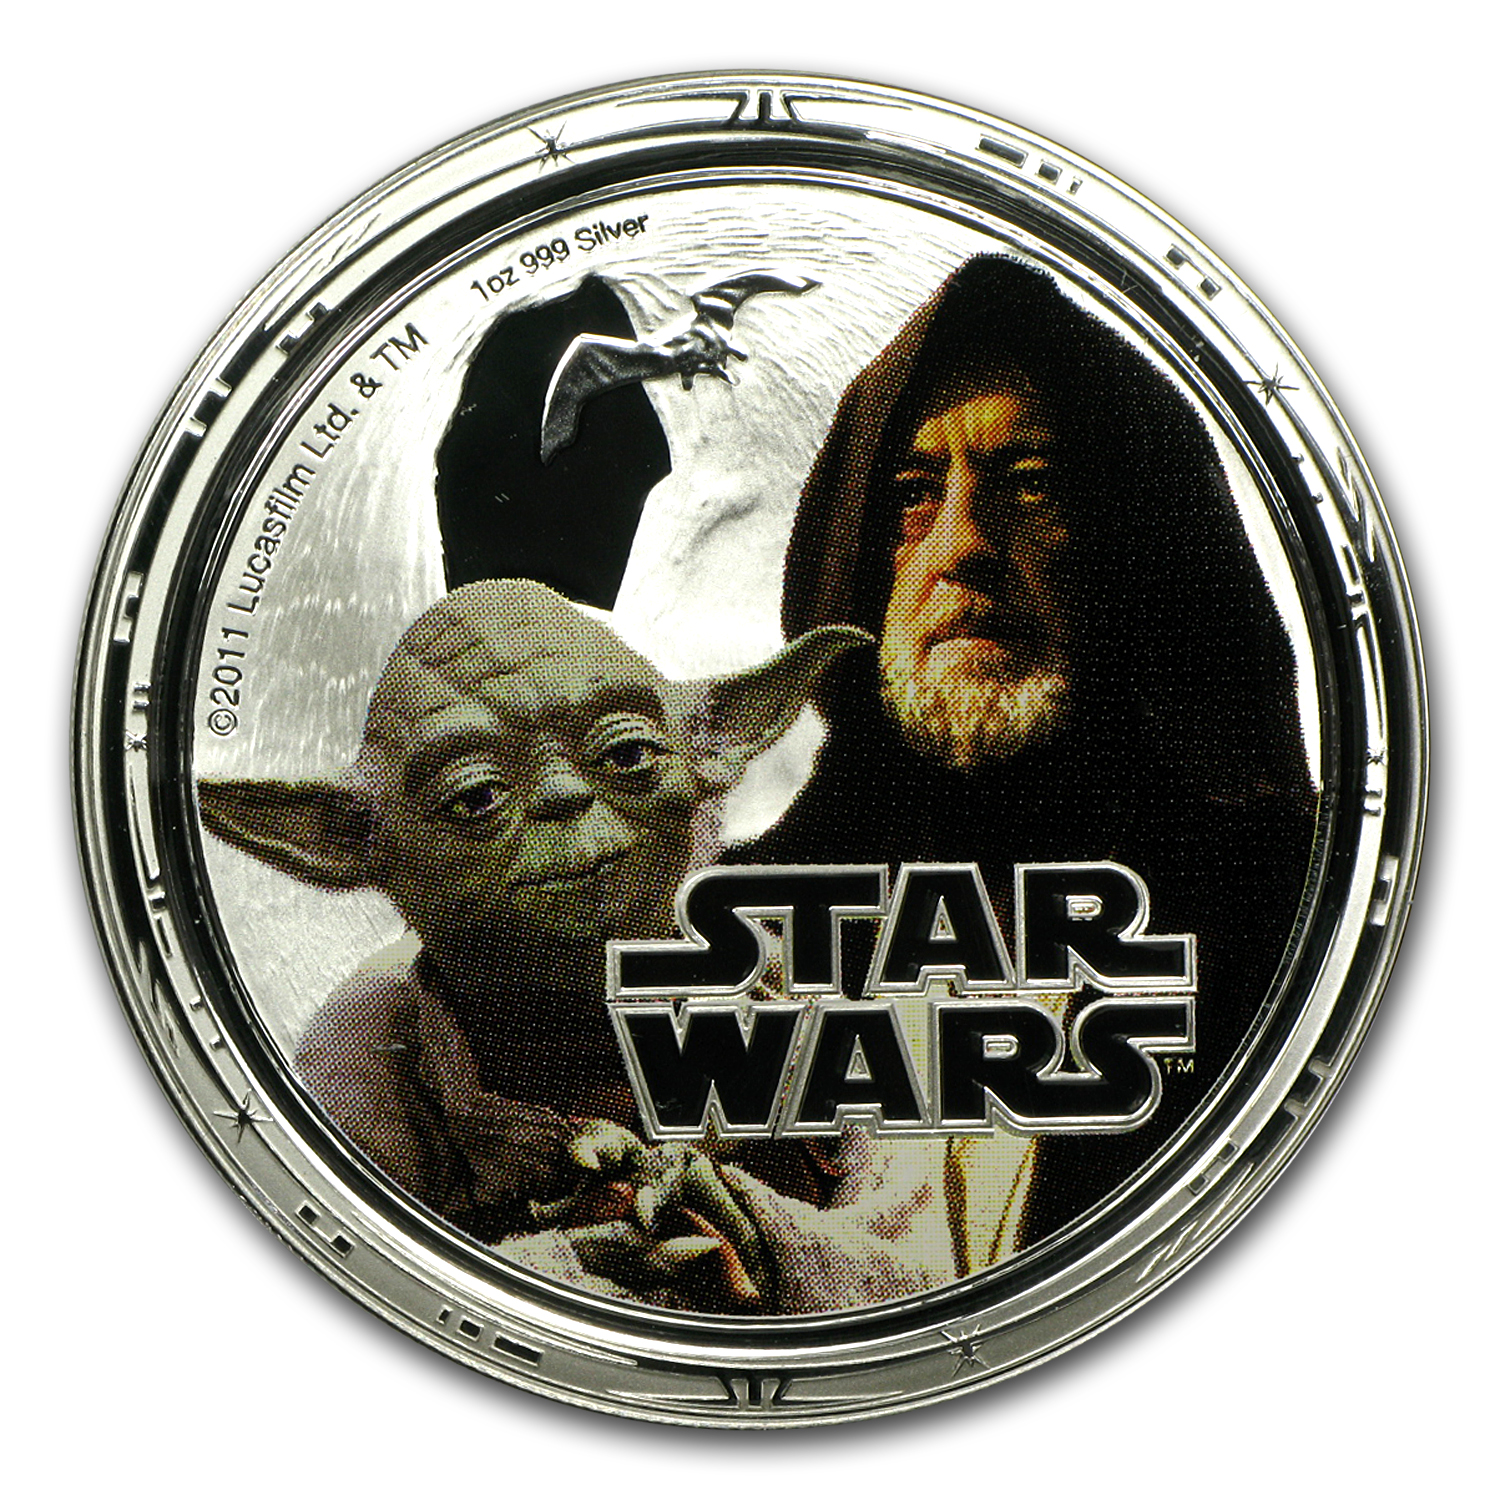 2011 Niue 4-Coin 1 oz Silver $2 Star Wars Pf Set (Rebel Alliance)